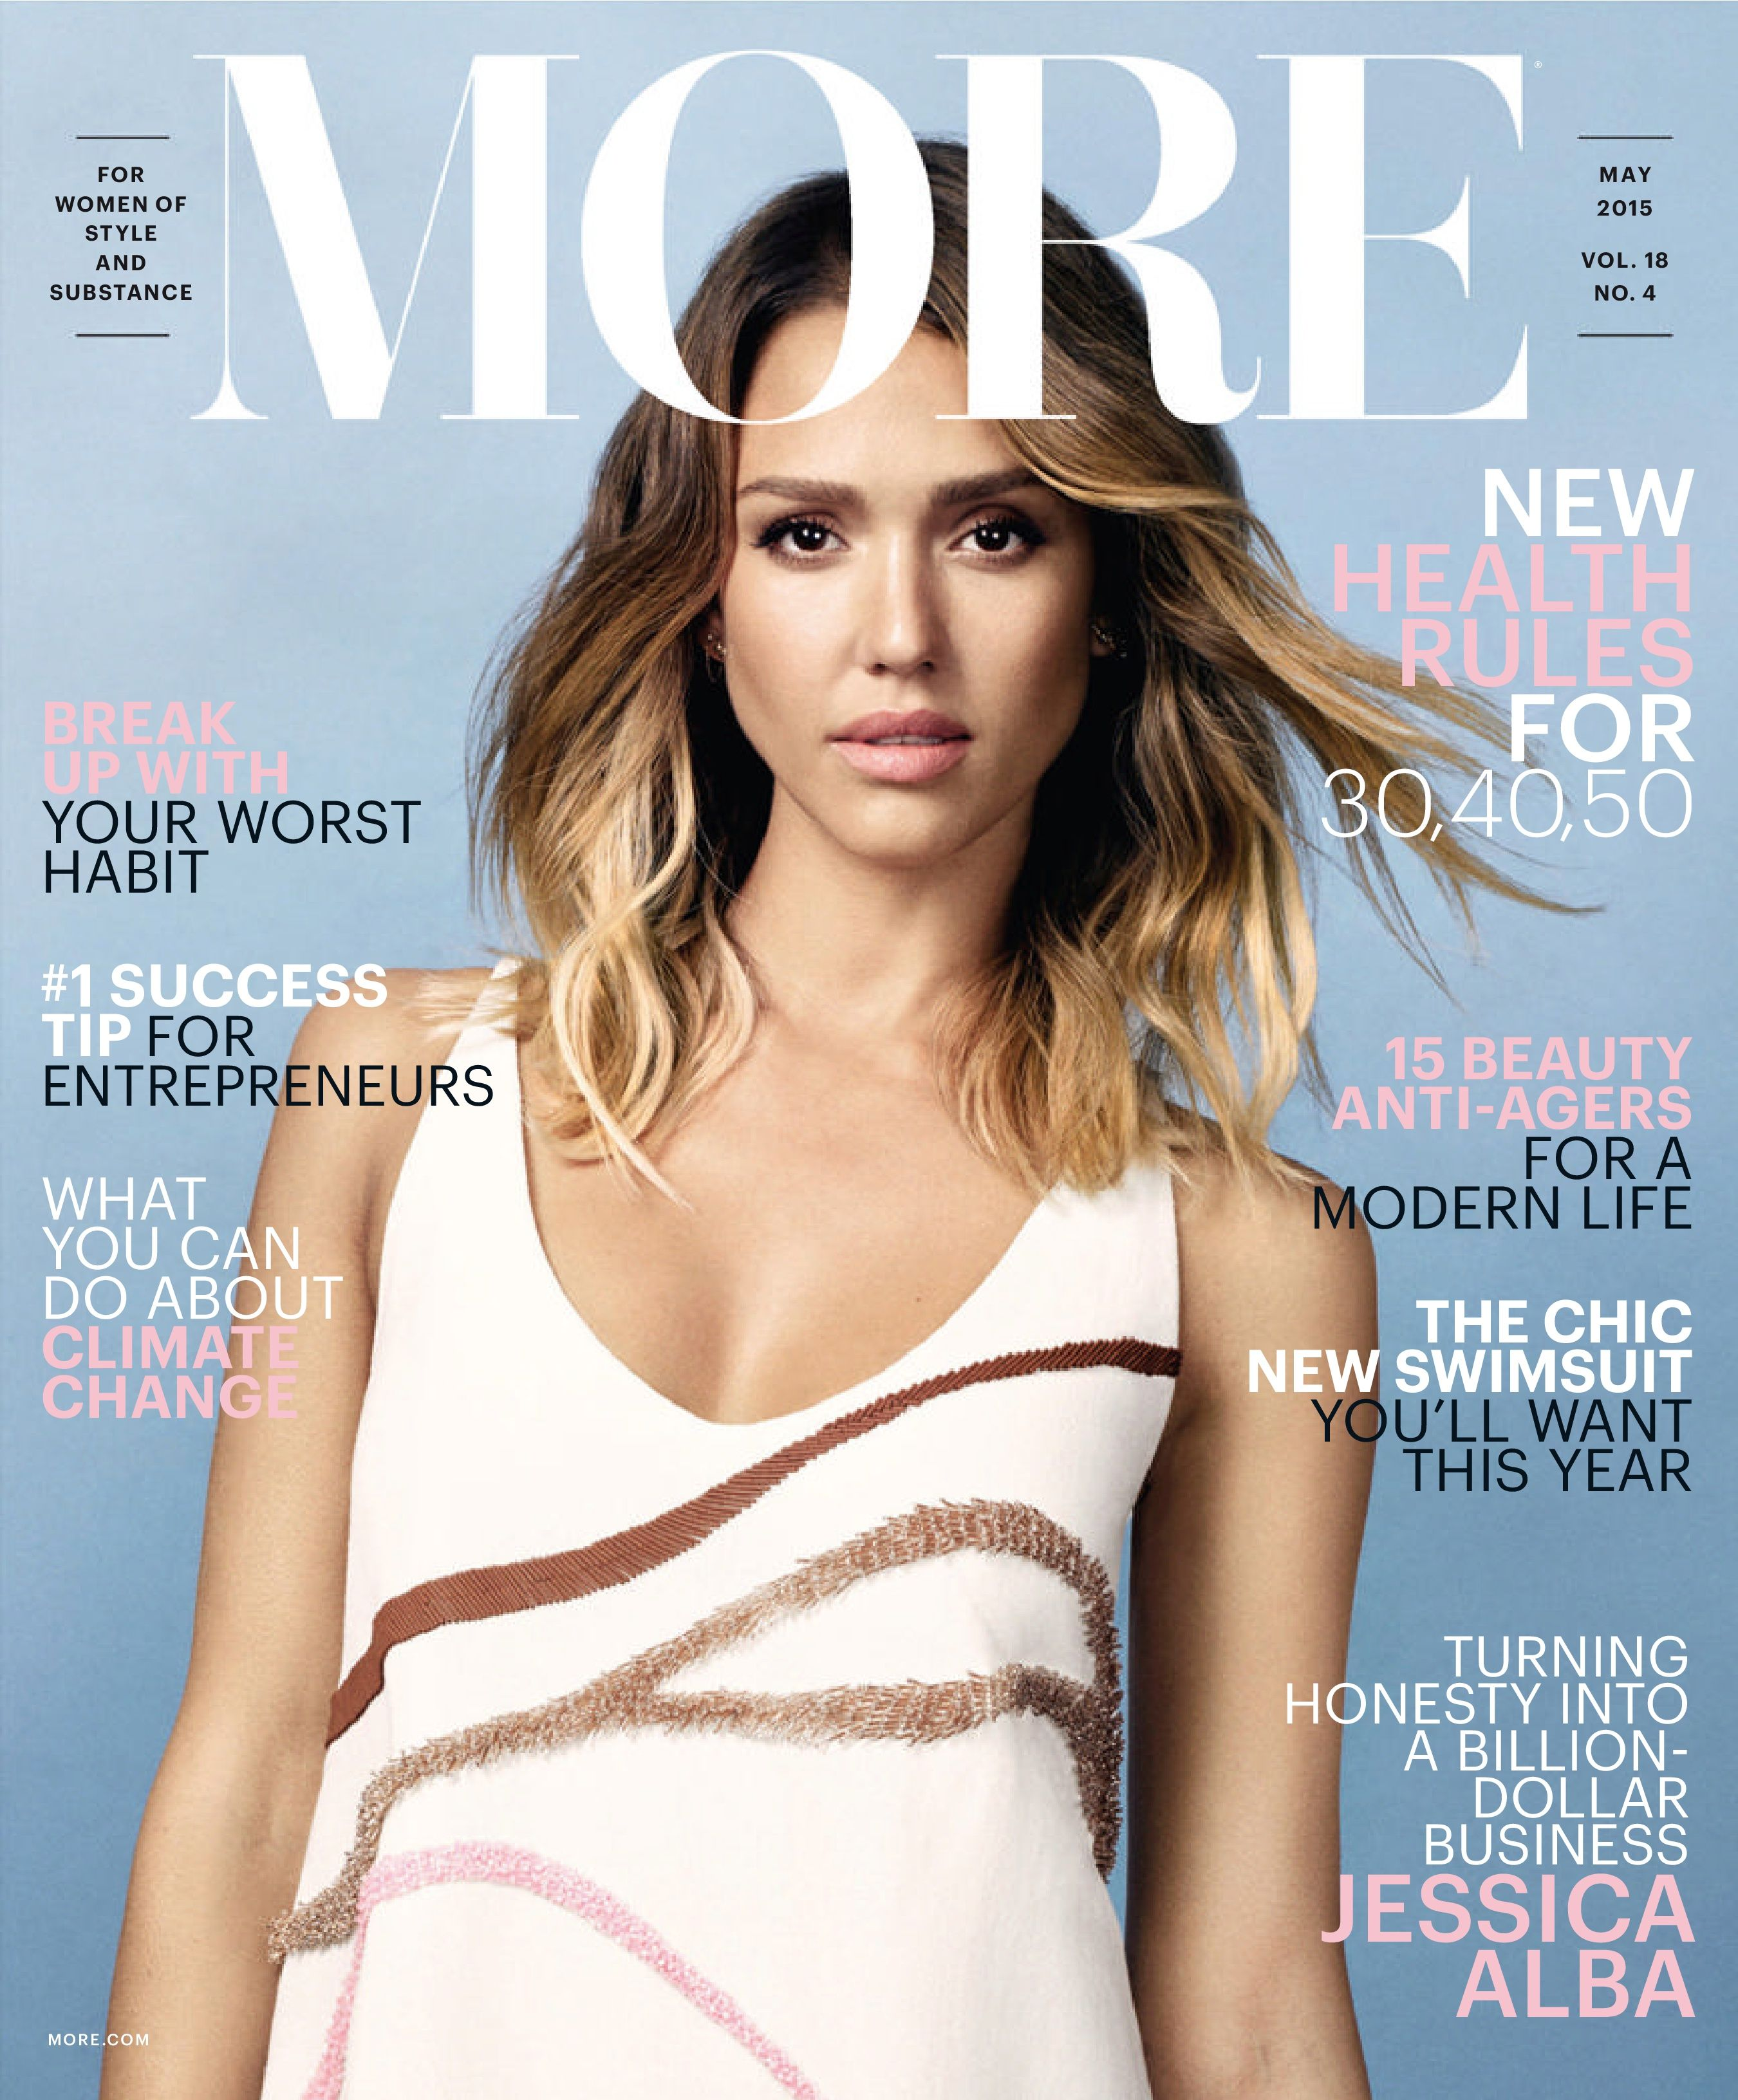 The rules of life for successful moms: Jessica Alba